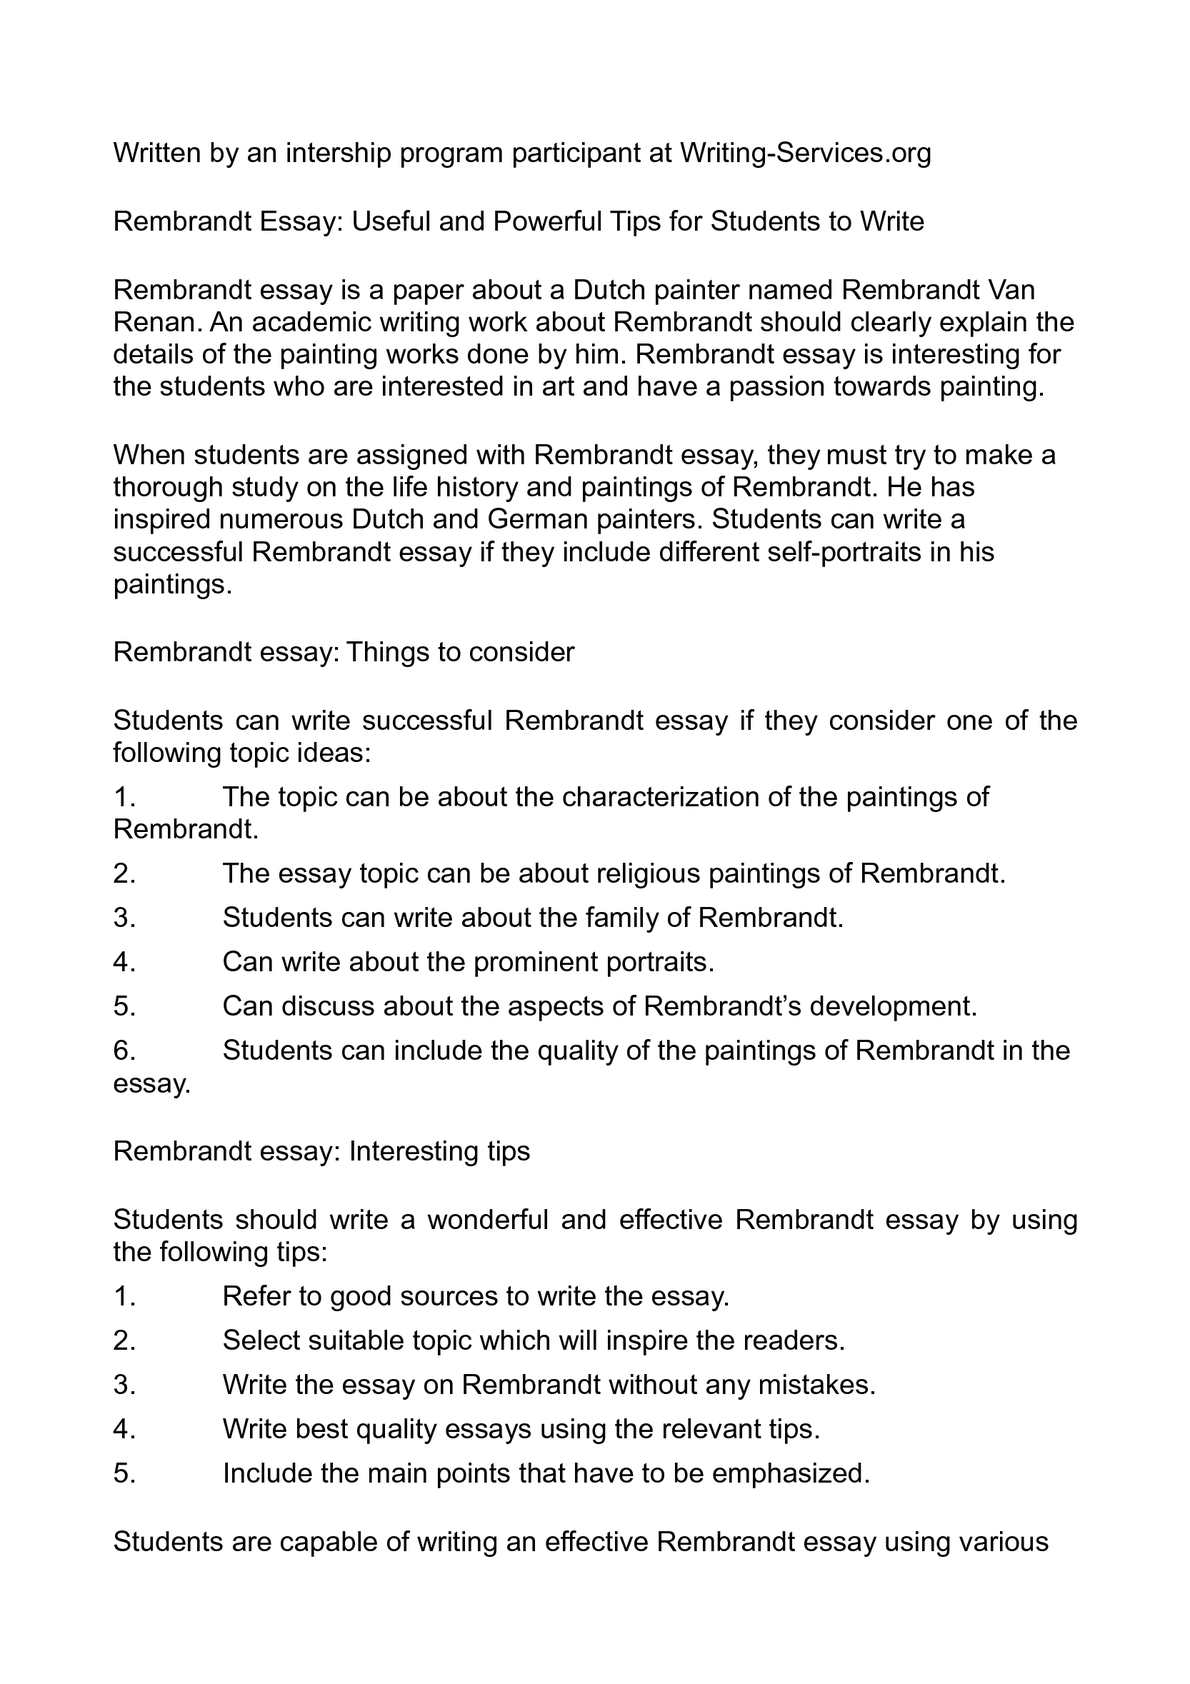 Argumentative Essay Thesis Statement Examples Calamo  Rembrandt Essay Useful And Powerful Tips For Students To Write Essay Thesis Statement also Example Of Essay Proposal Calamo  Rembrandt Essay Useful And Powerful Tips For Students To  Good High School Essay Topics